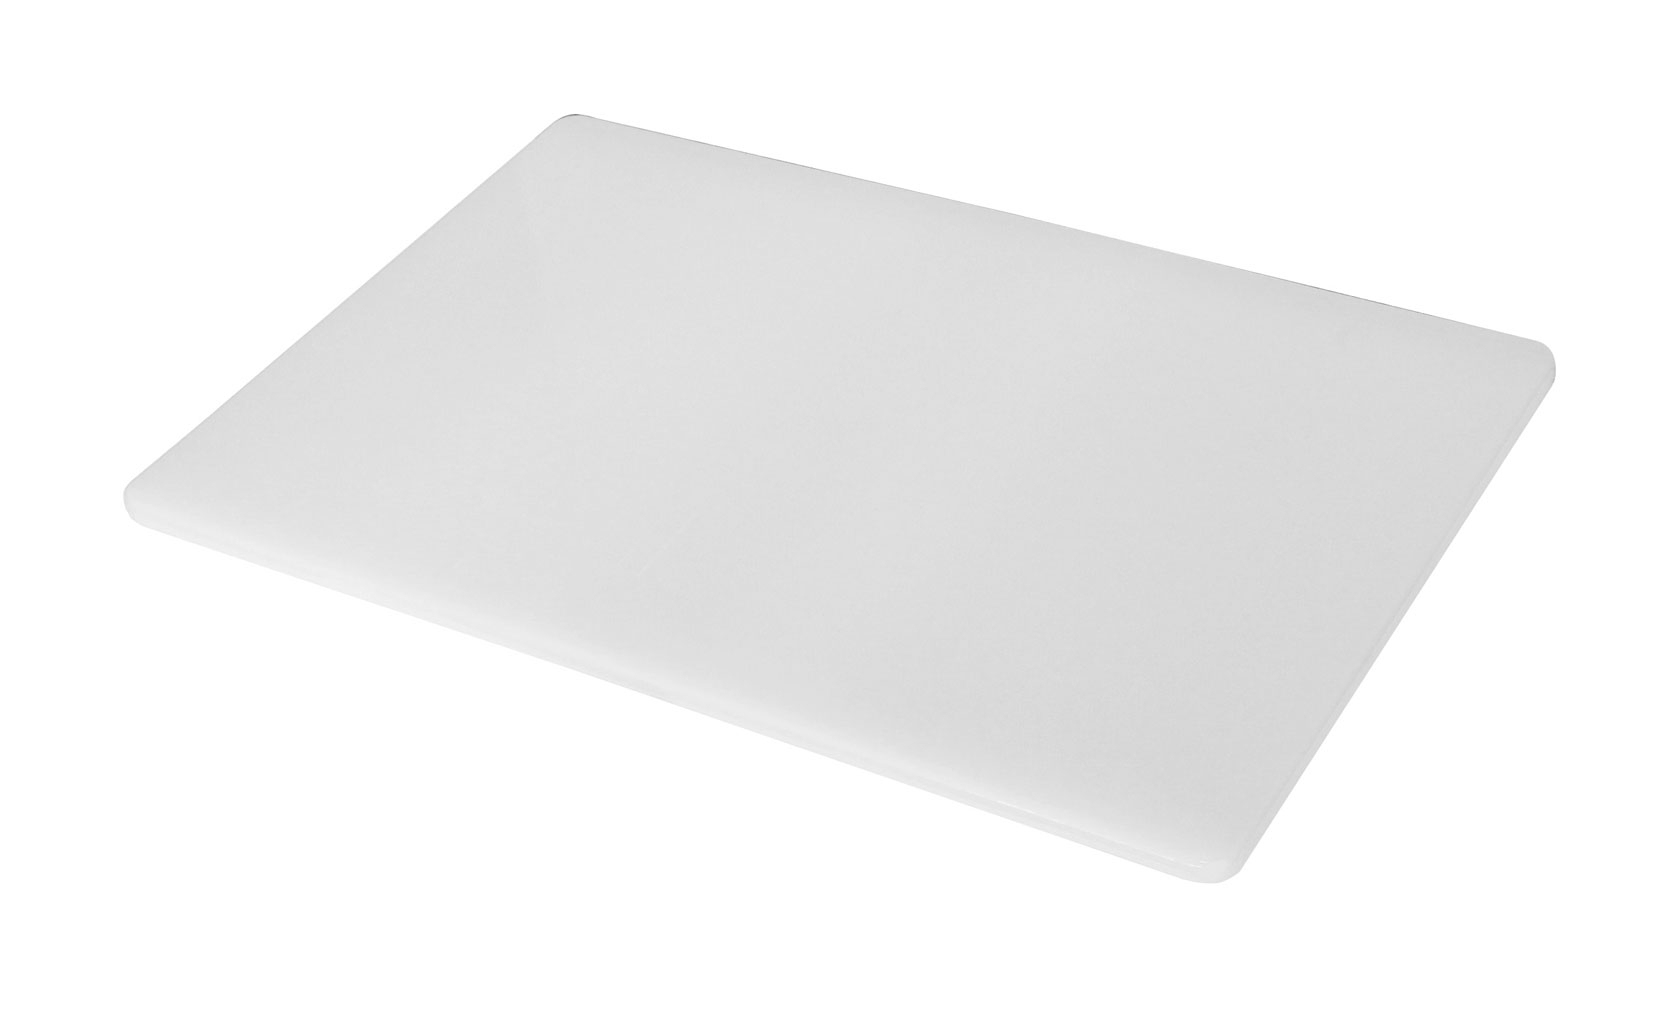 White High Density Standard Si ze Chopping Board 457 x 300 x 12.7 mm